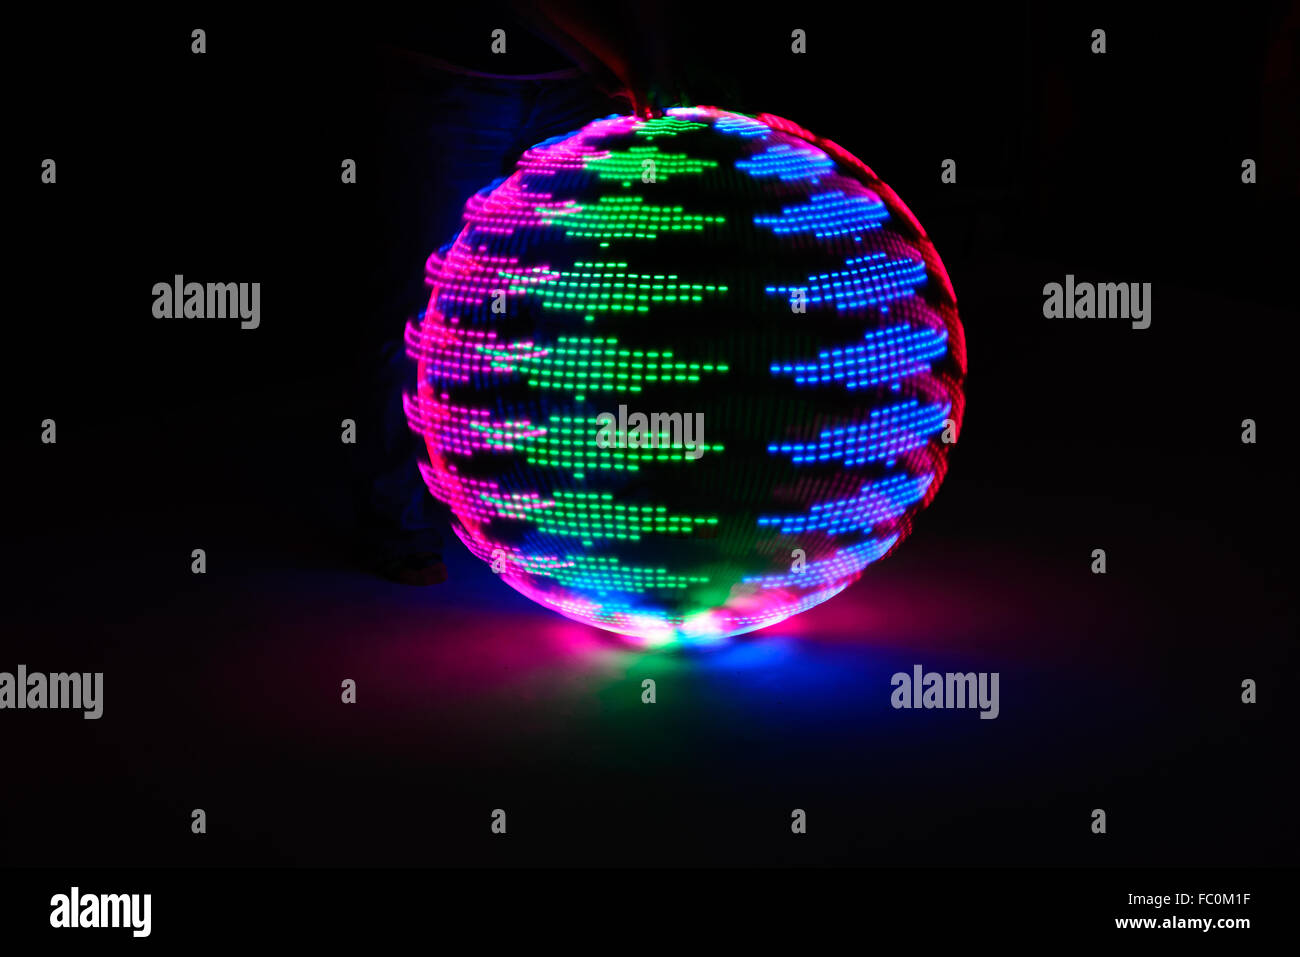 Beautiful random LED light painting in the darkness, long exposure technique, color full flower, globe spinning - Stock Image